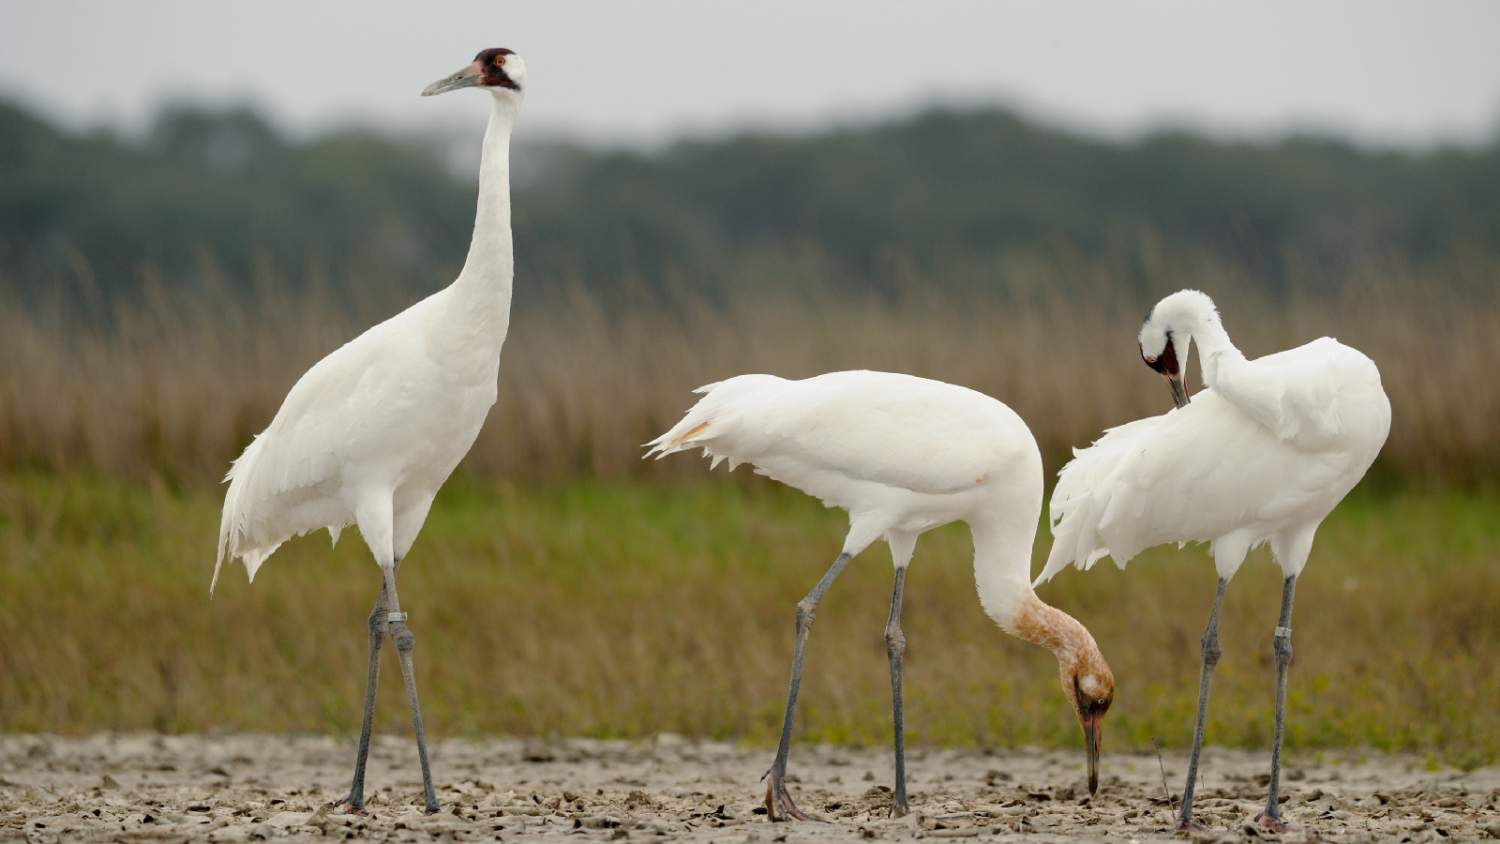 A whooping crane (Grus americana) family in their wintering grounds at Aransas National Wildlife Refuge in Texas.